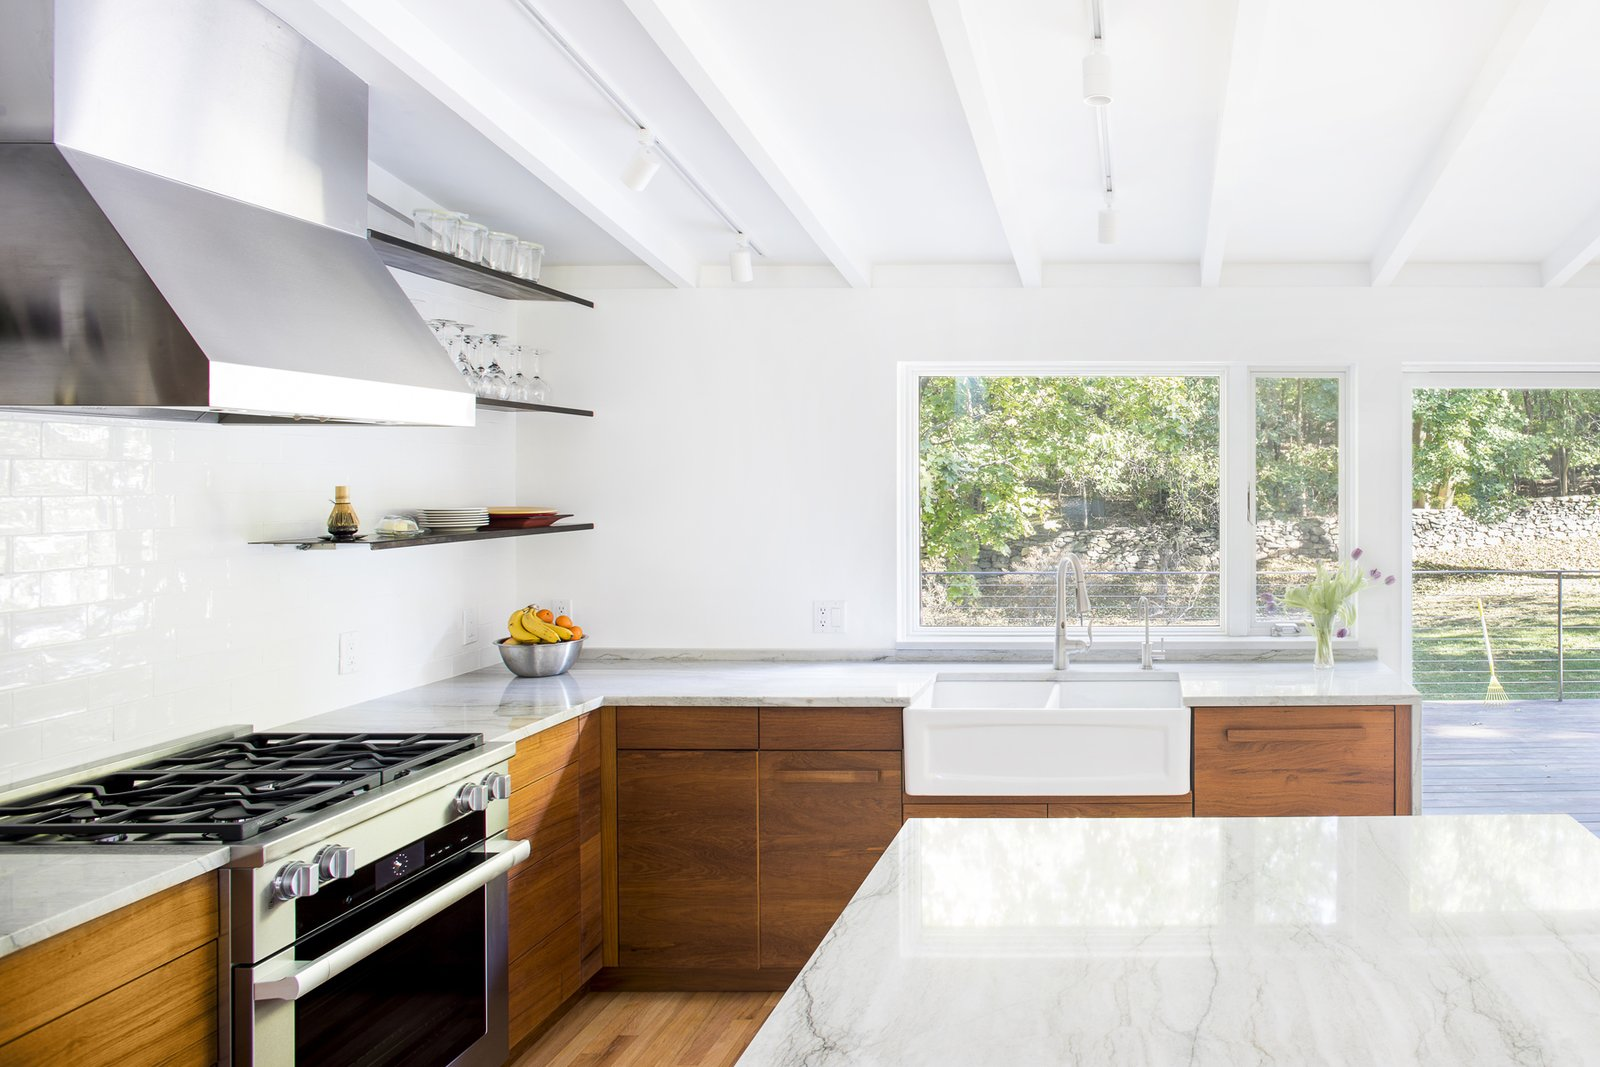 Kitchen, Range, Range Hood, Dishwasher, Marble, Wood, Medium Hardwood, Ceramic Tile, Track, Ceiling, and Undermount Kitchen looking to back yard  Best Kitchen Range Medium Hardwood Ceiling Track Wood Marble Photos from Deertrack Lane